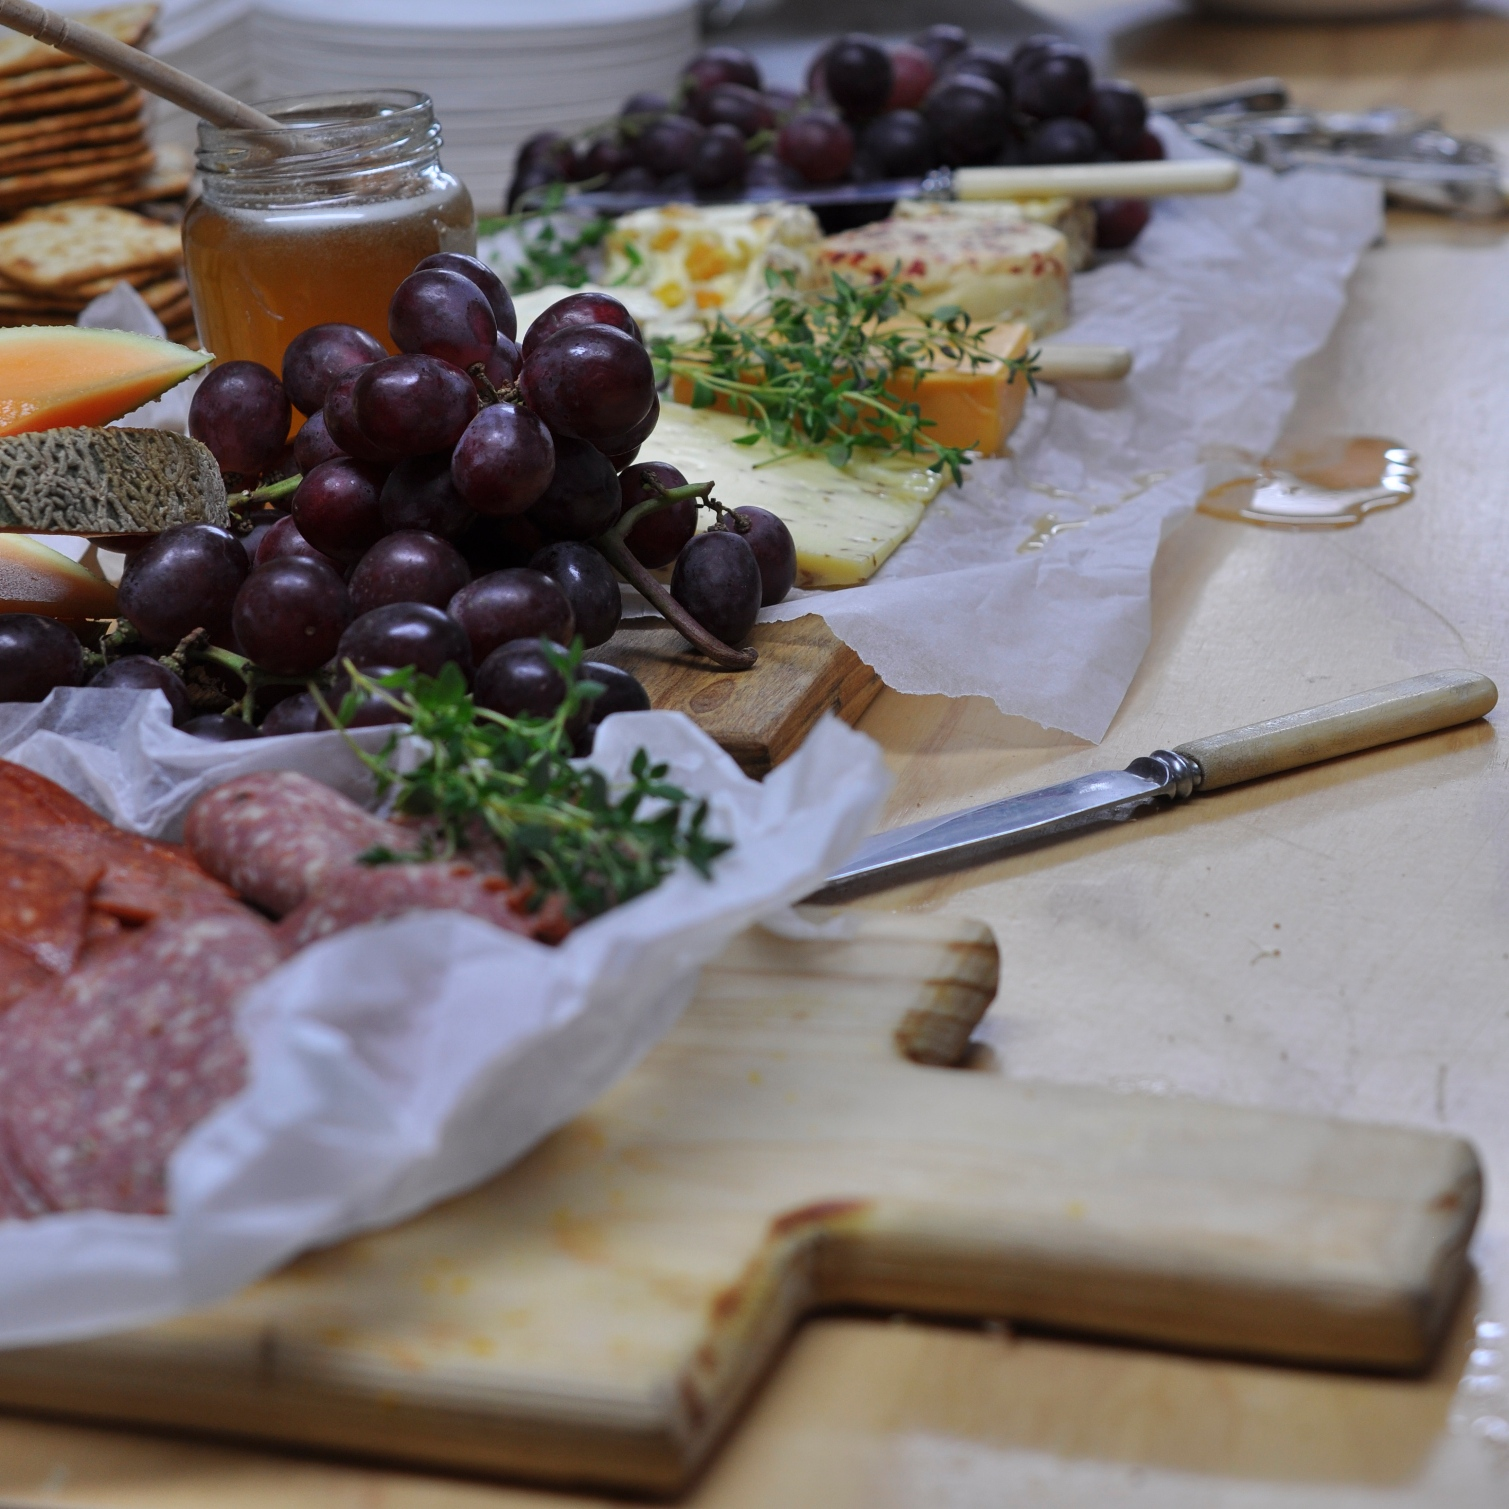 Who can resist this cheeseboard?